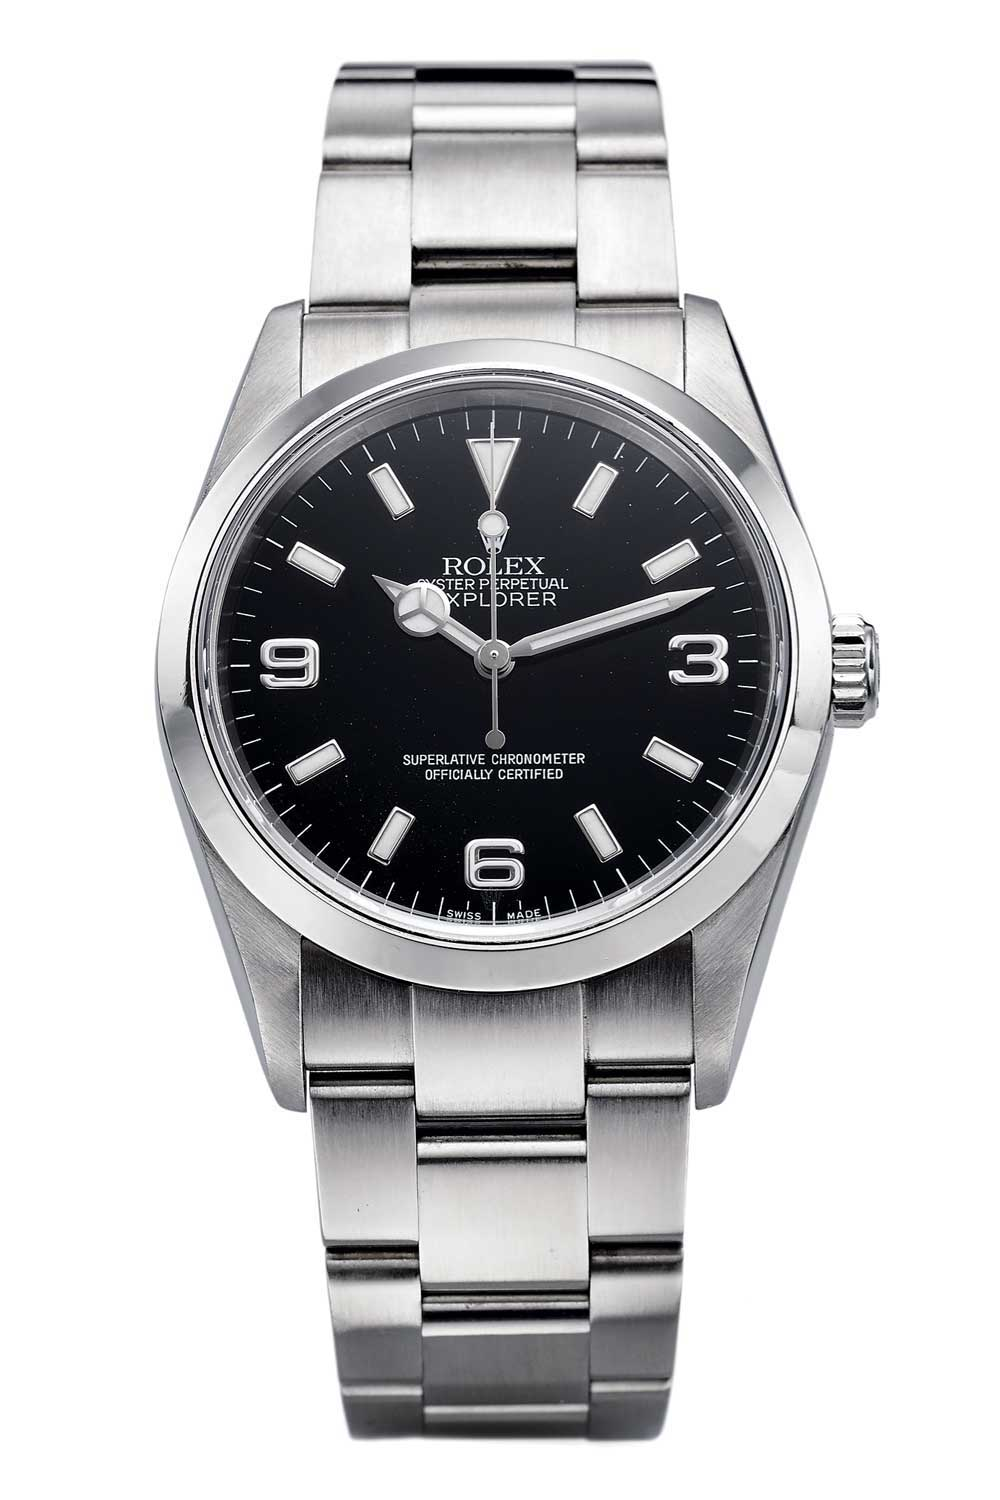 The Rolex Explorer ref. 114270 launched circa 2000 succeeded the ref. 14270